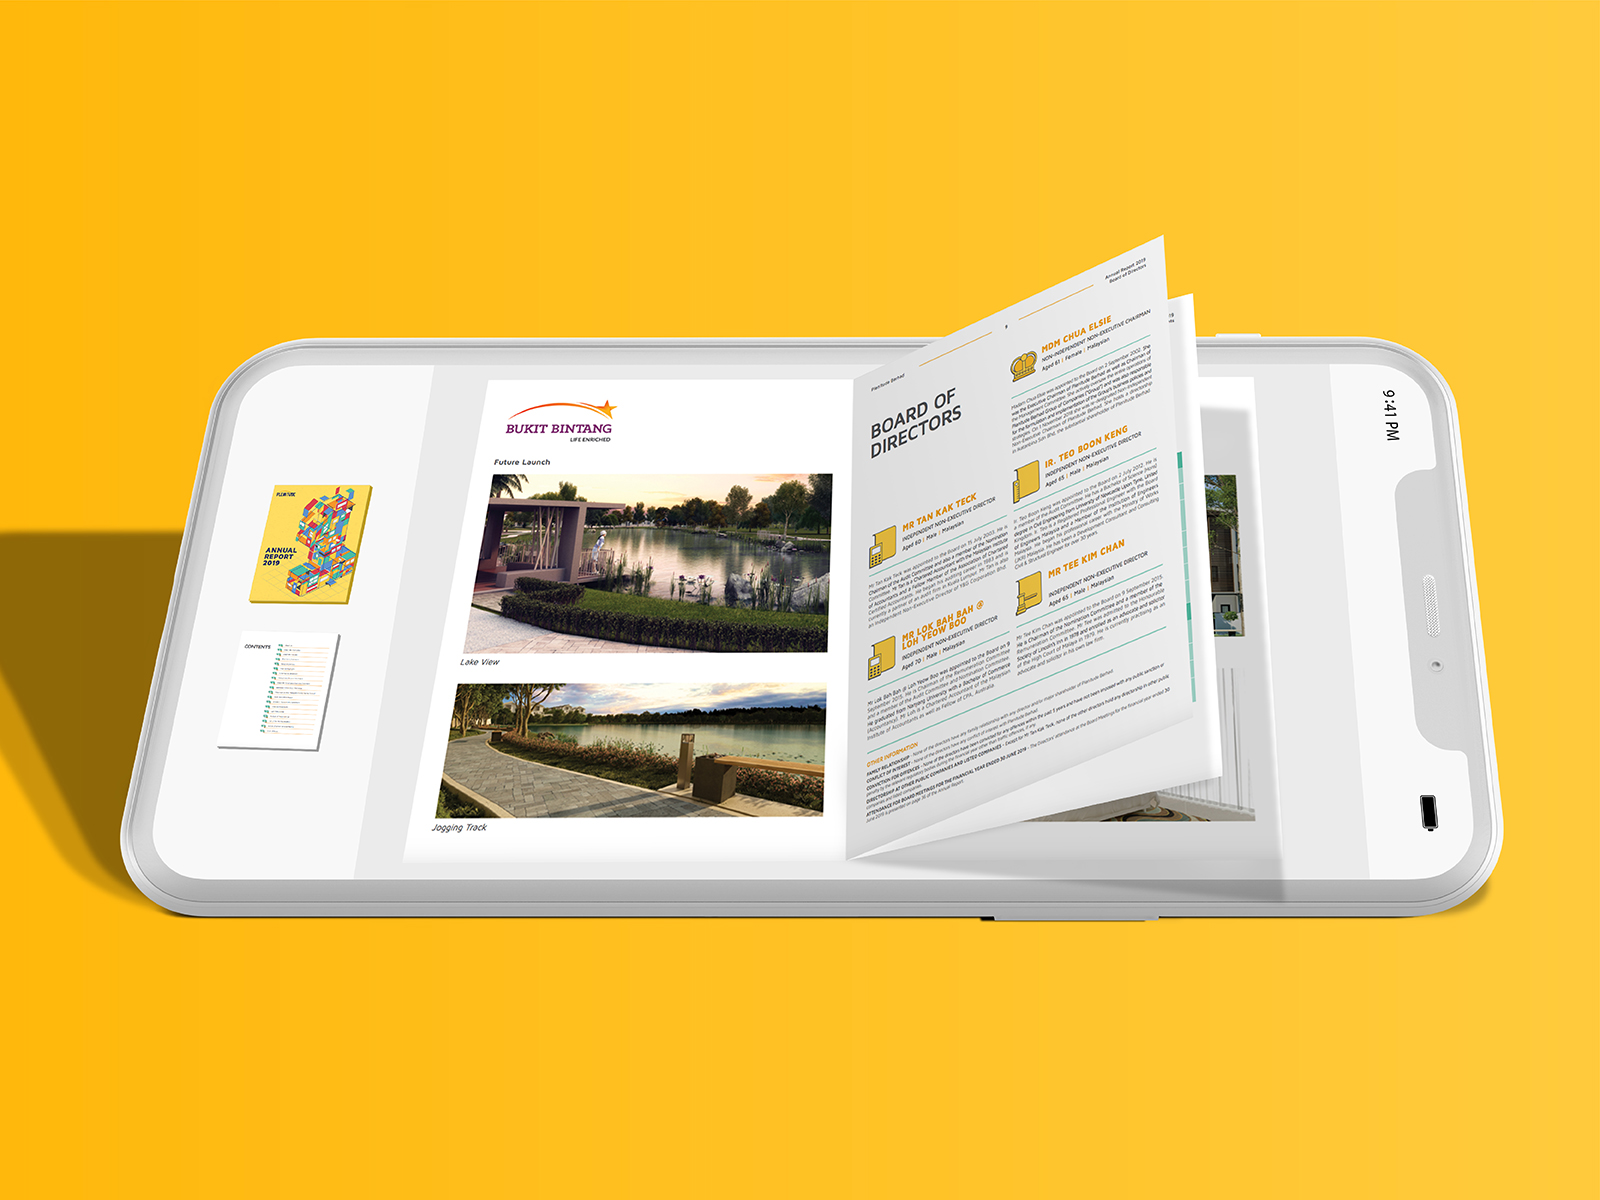 Plenitude annual report 2019 digital version showing inner page layout and icon design